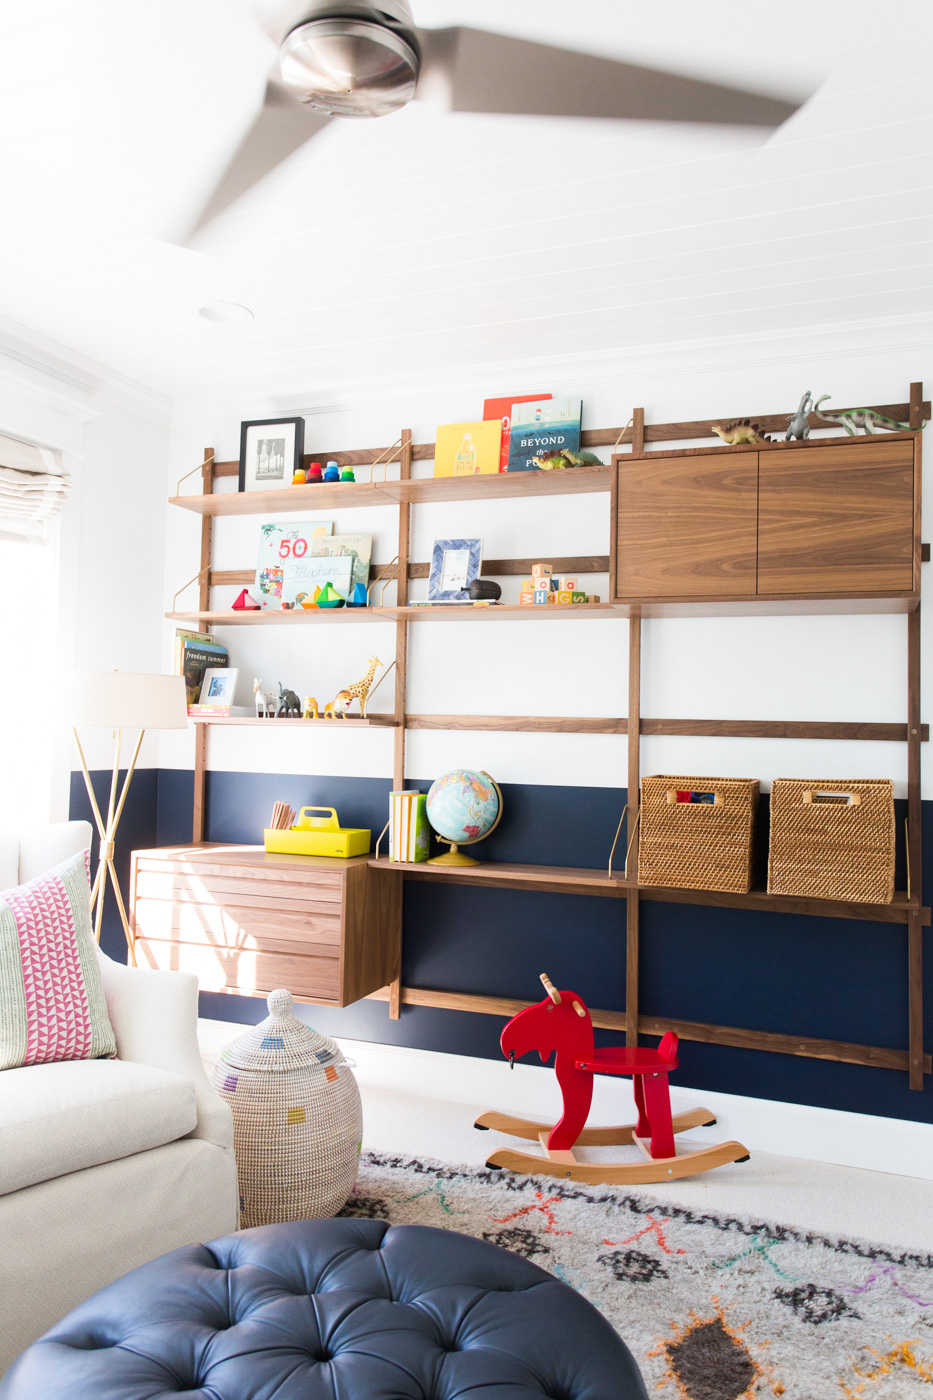 Built in shelves holding toys and games